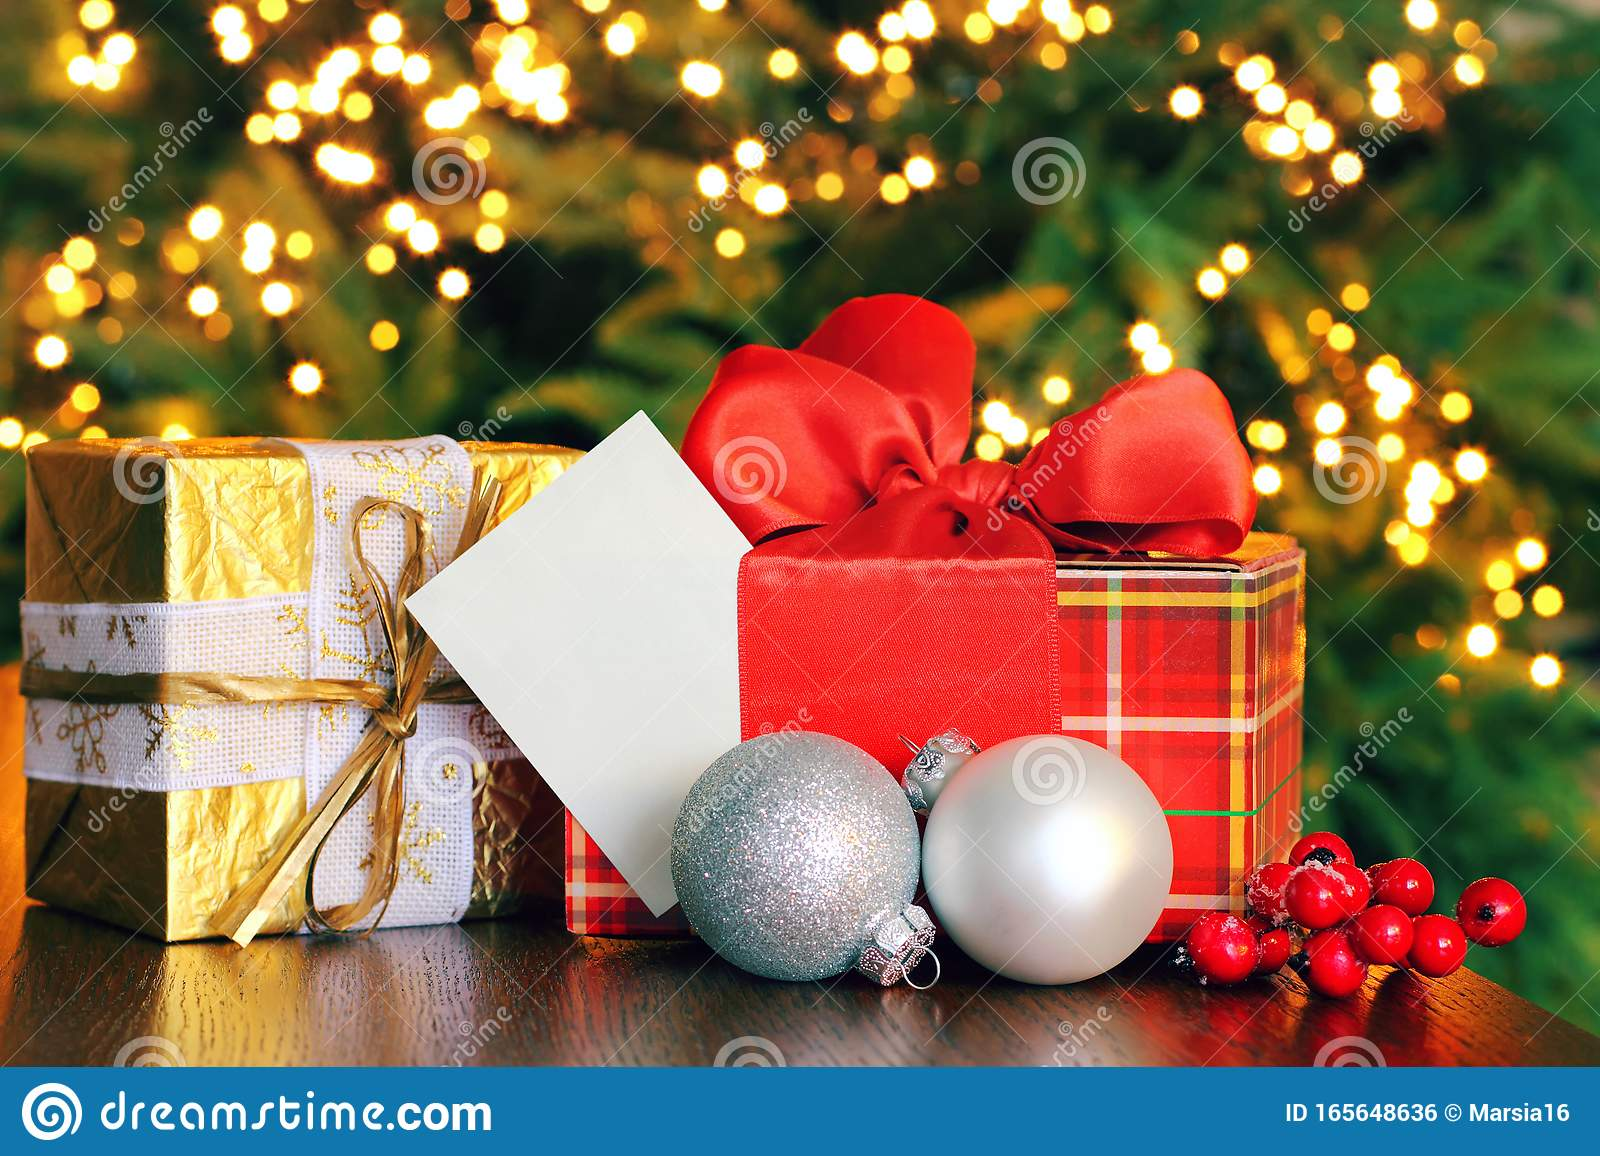 Christmas Gift Boxes With Greeting Card Stock Photo ...